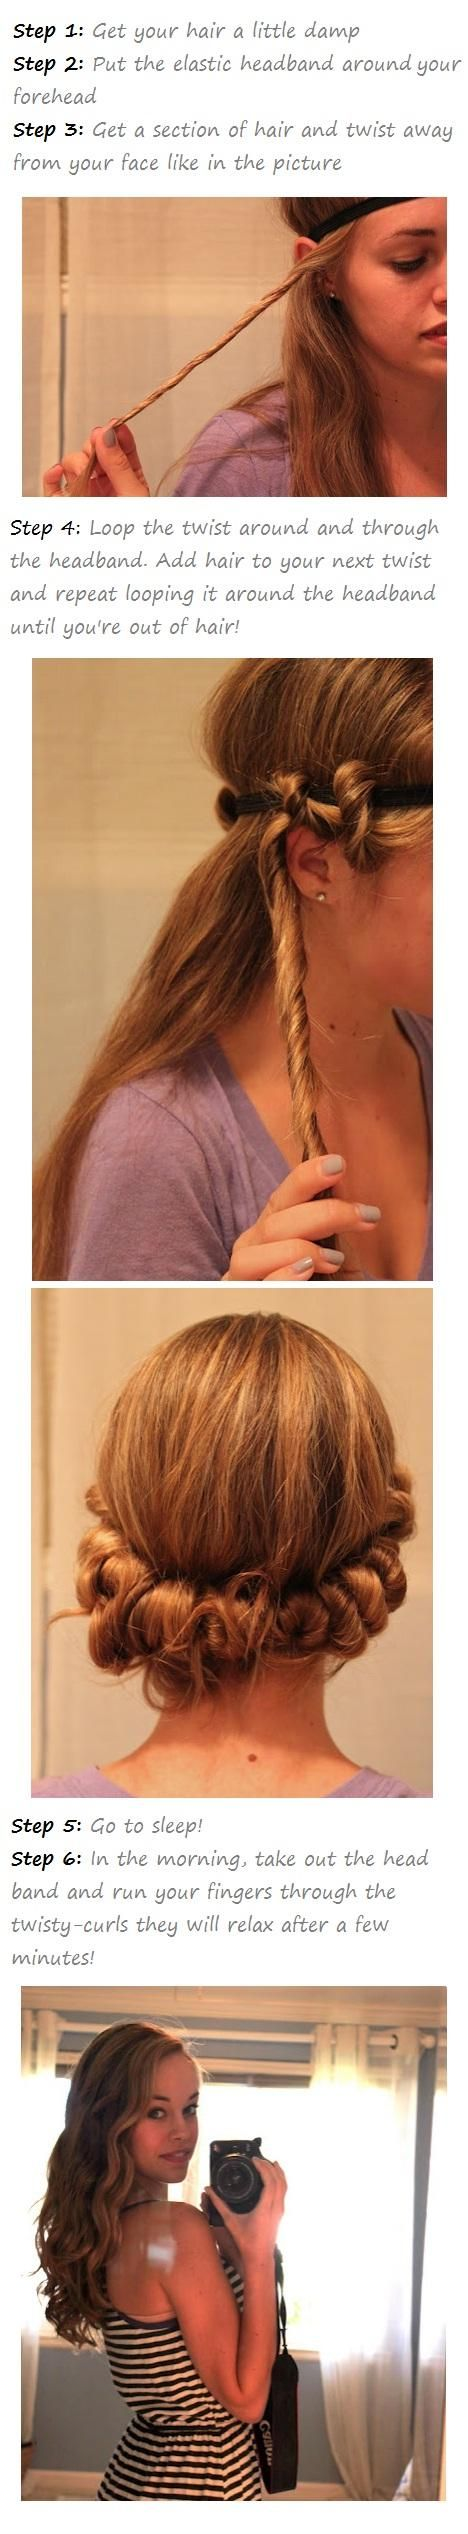 How to give yourself Natural looking curls: Hair Ideas, Hairstyles, Headband Curl, Hair Styles, Hair Tutorial, No Heat Curl, Curly Hair, Overnight Curl